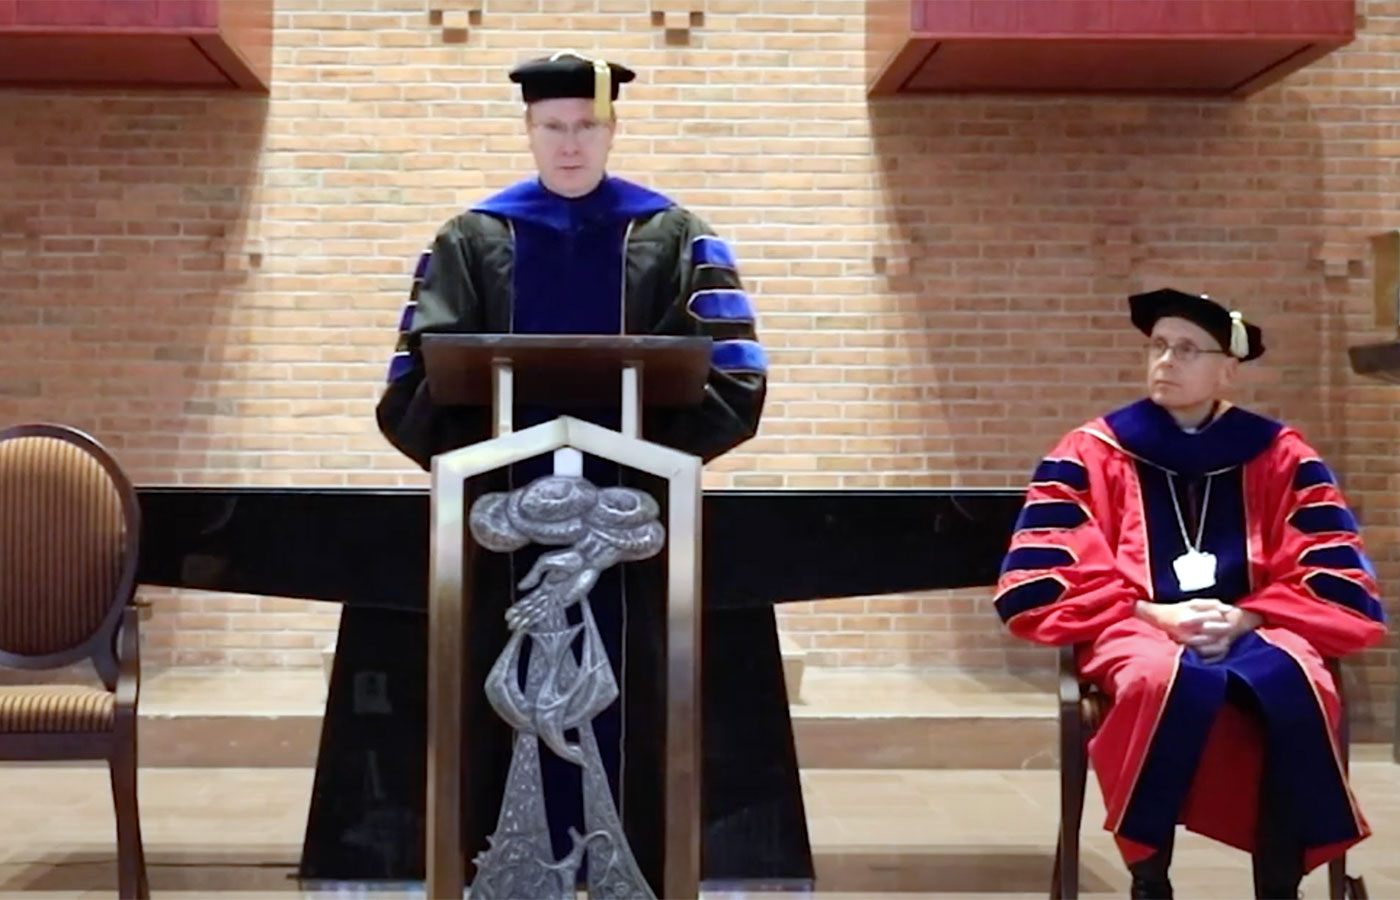 Brother Dan awarding medals during 2020 commencement